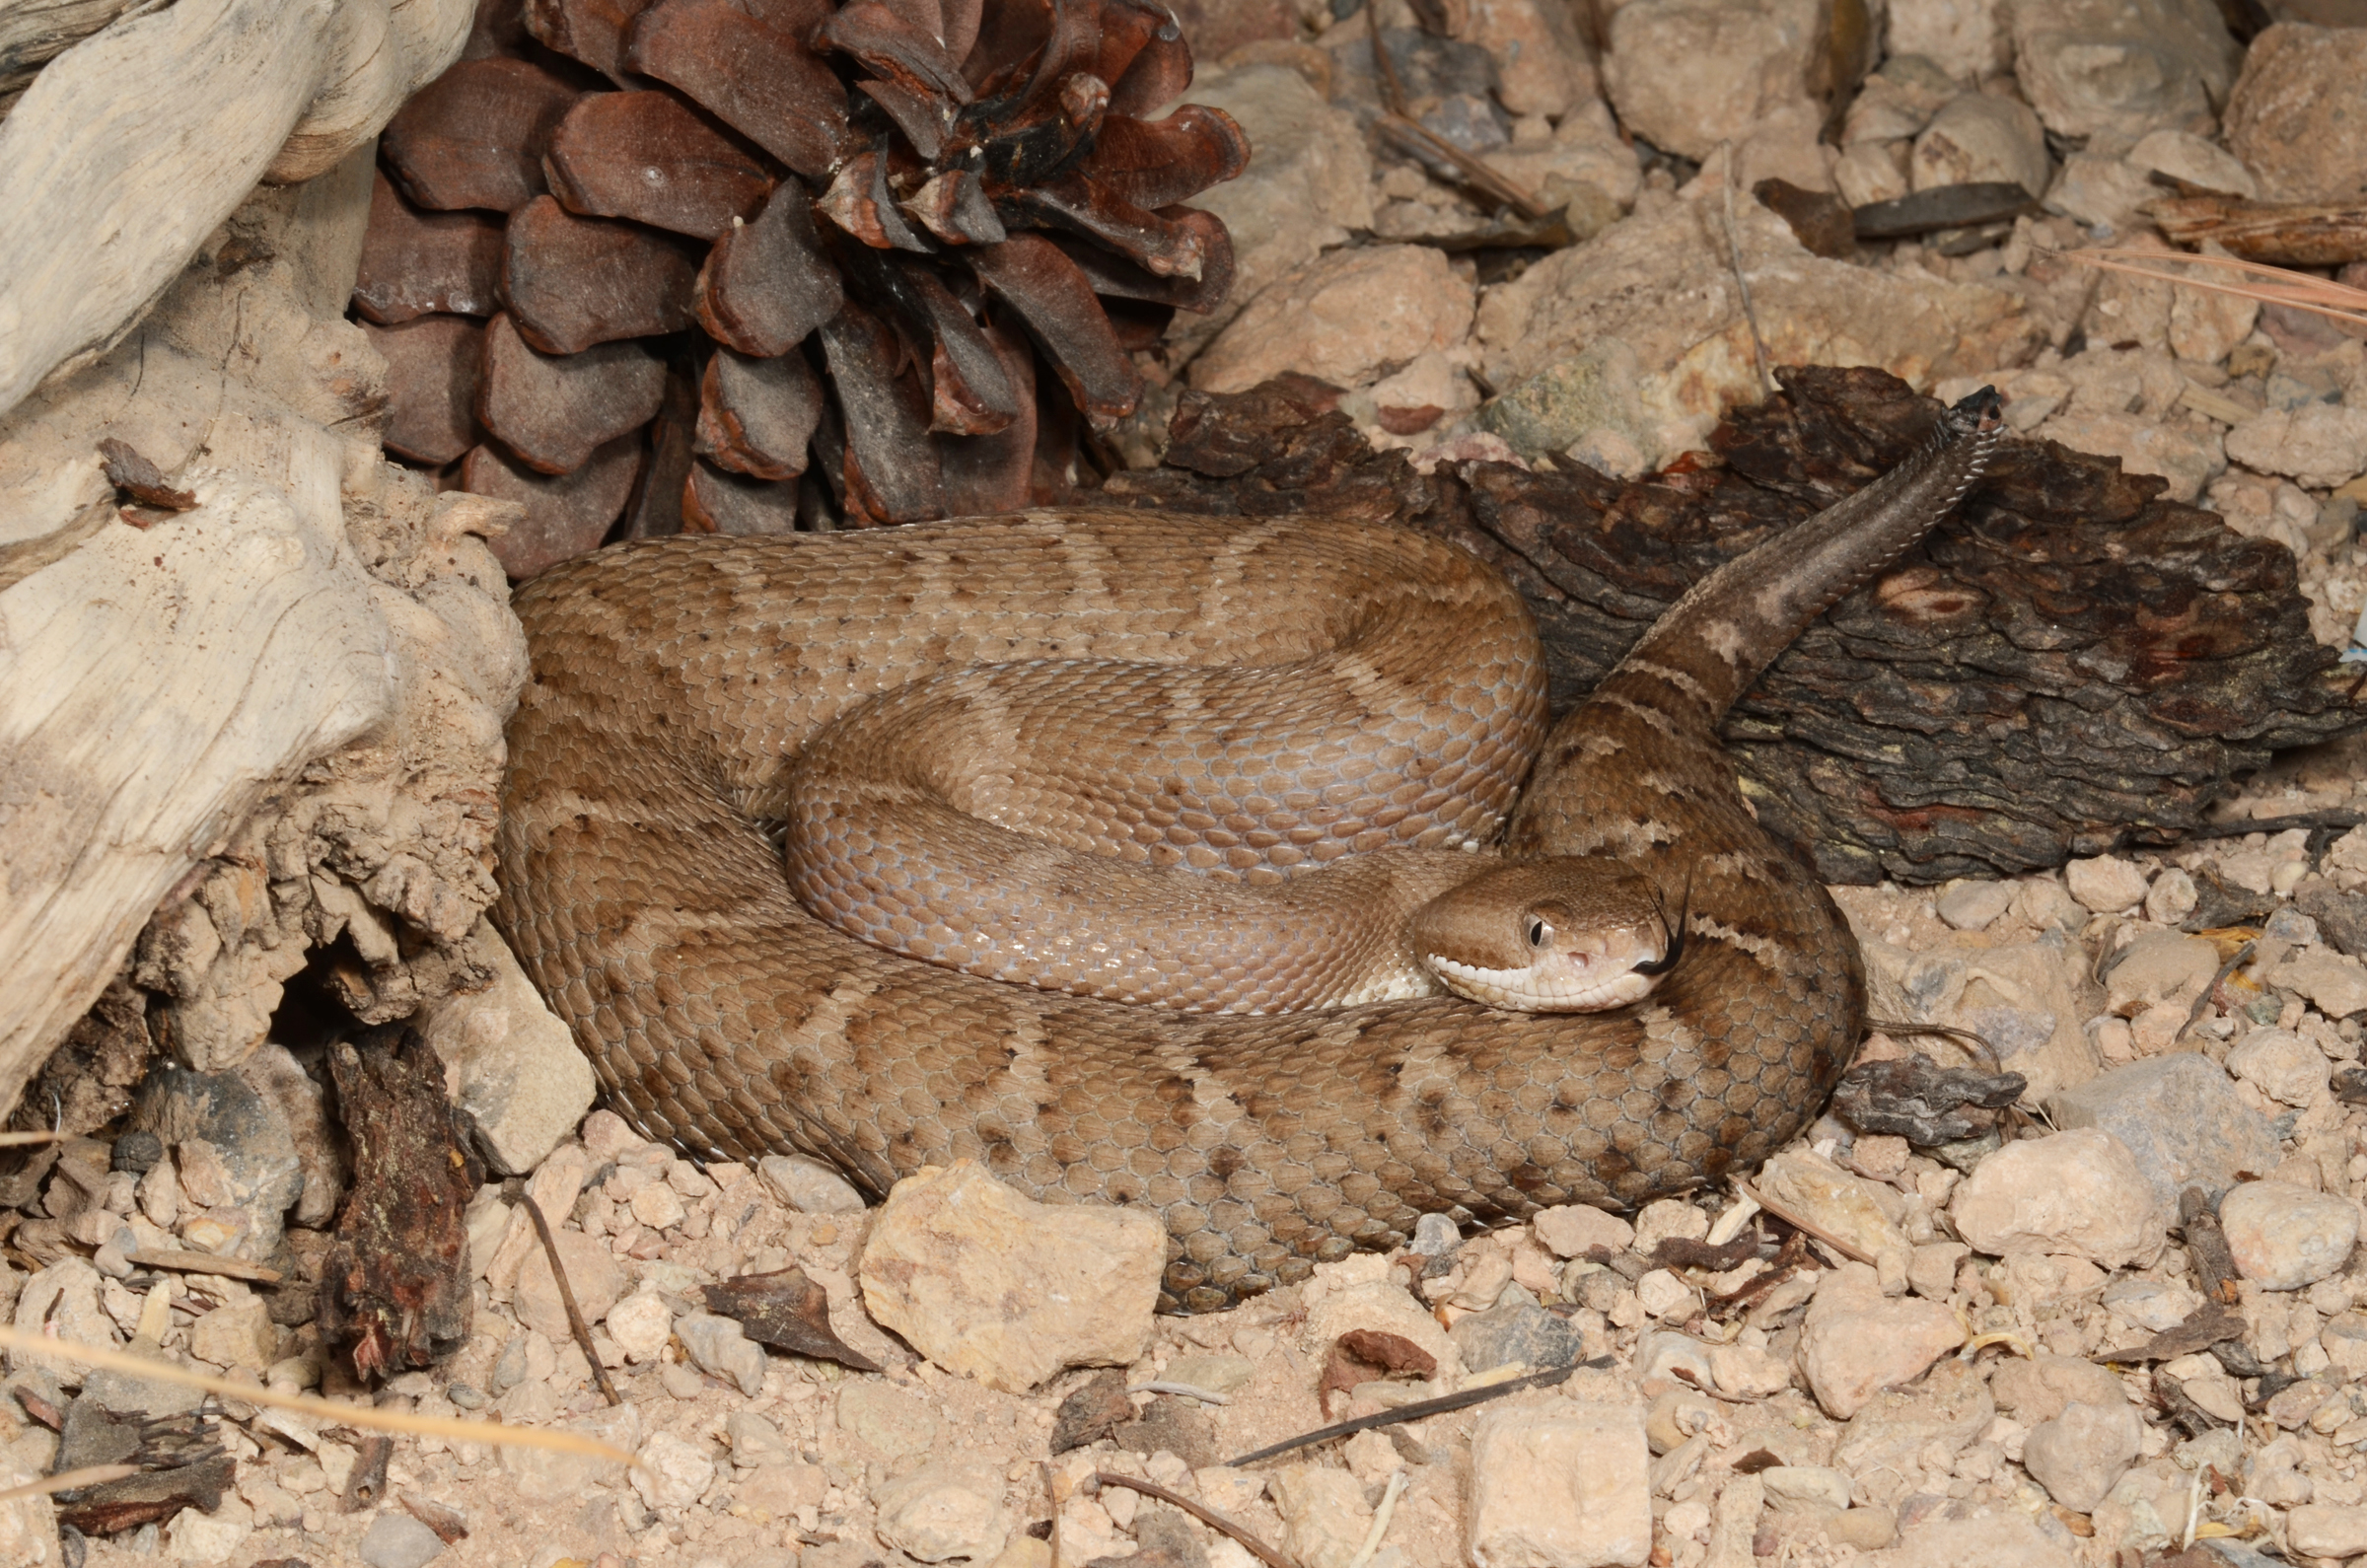 Crotalus willardi silus, A1 adjusted.jpg